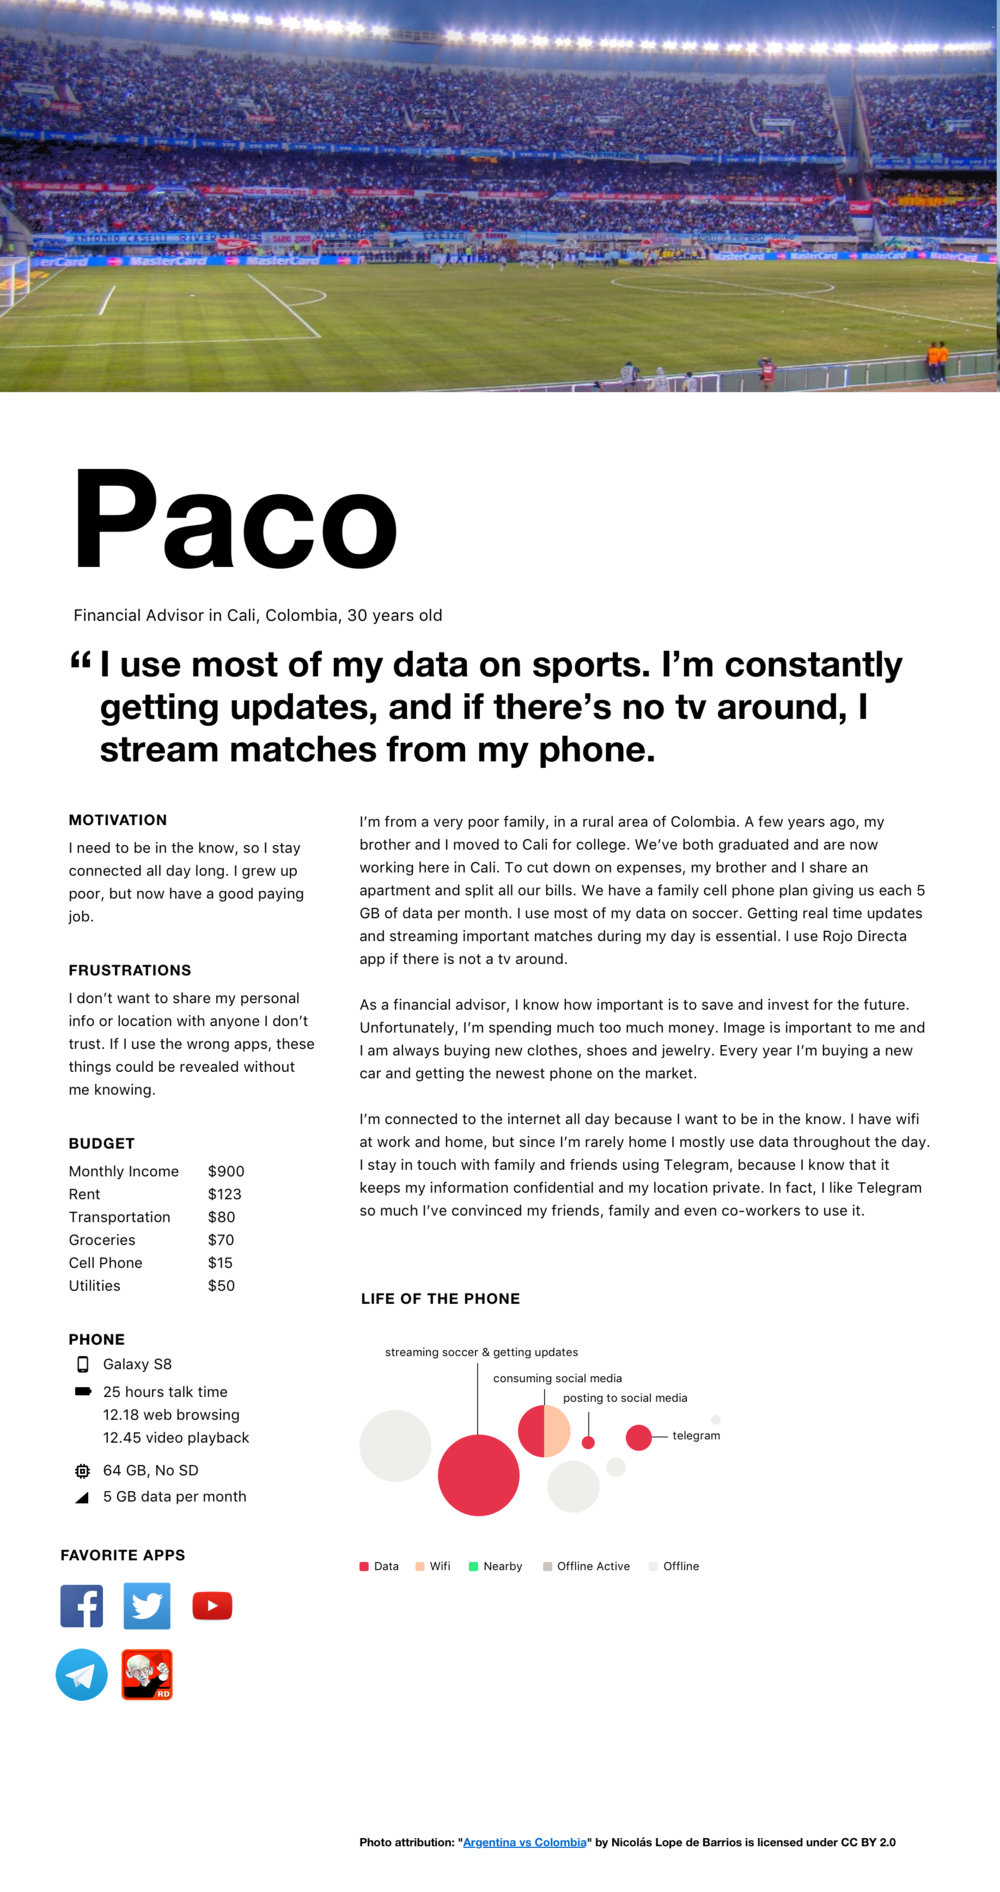 ux-persona-colombia-Paco@3x.png